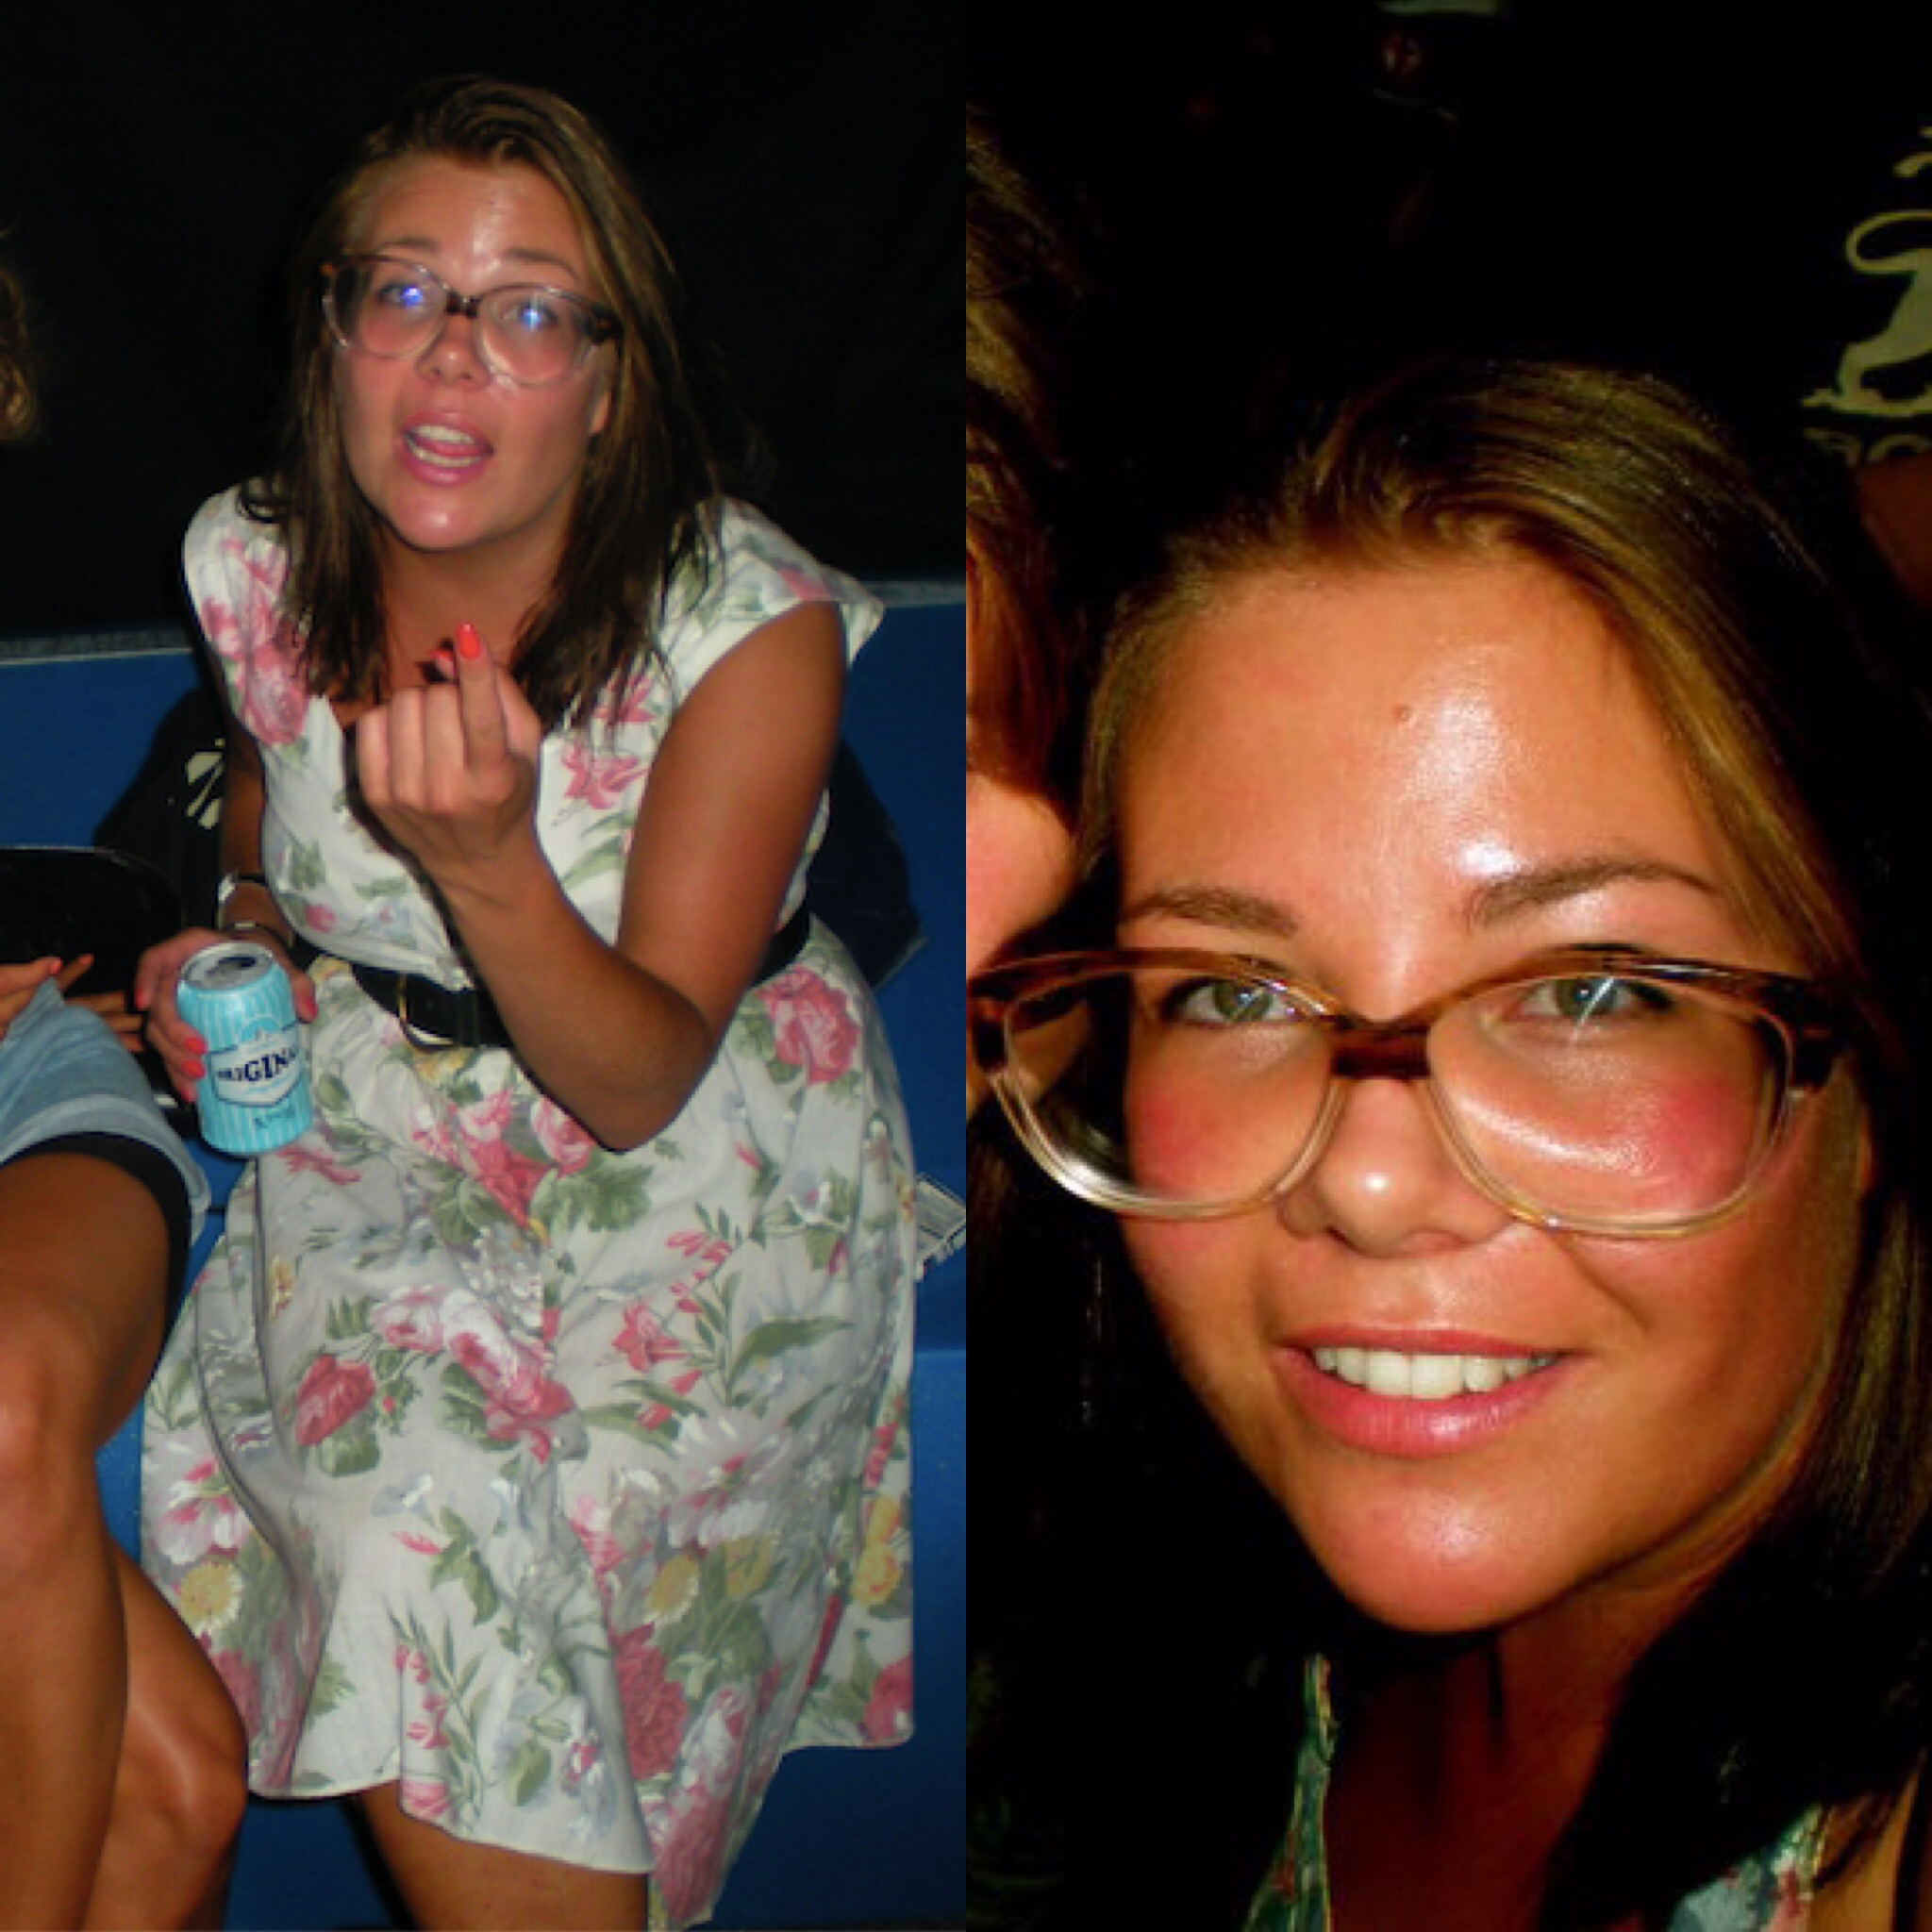 2010 // 2010. Tämän kuvaparin nimi on YOU KNOW WHAT THEY SAY ABOUT GIRLS WITH BIG GLASSES.